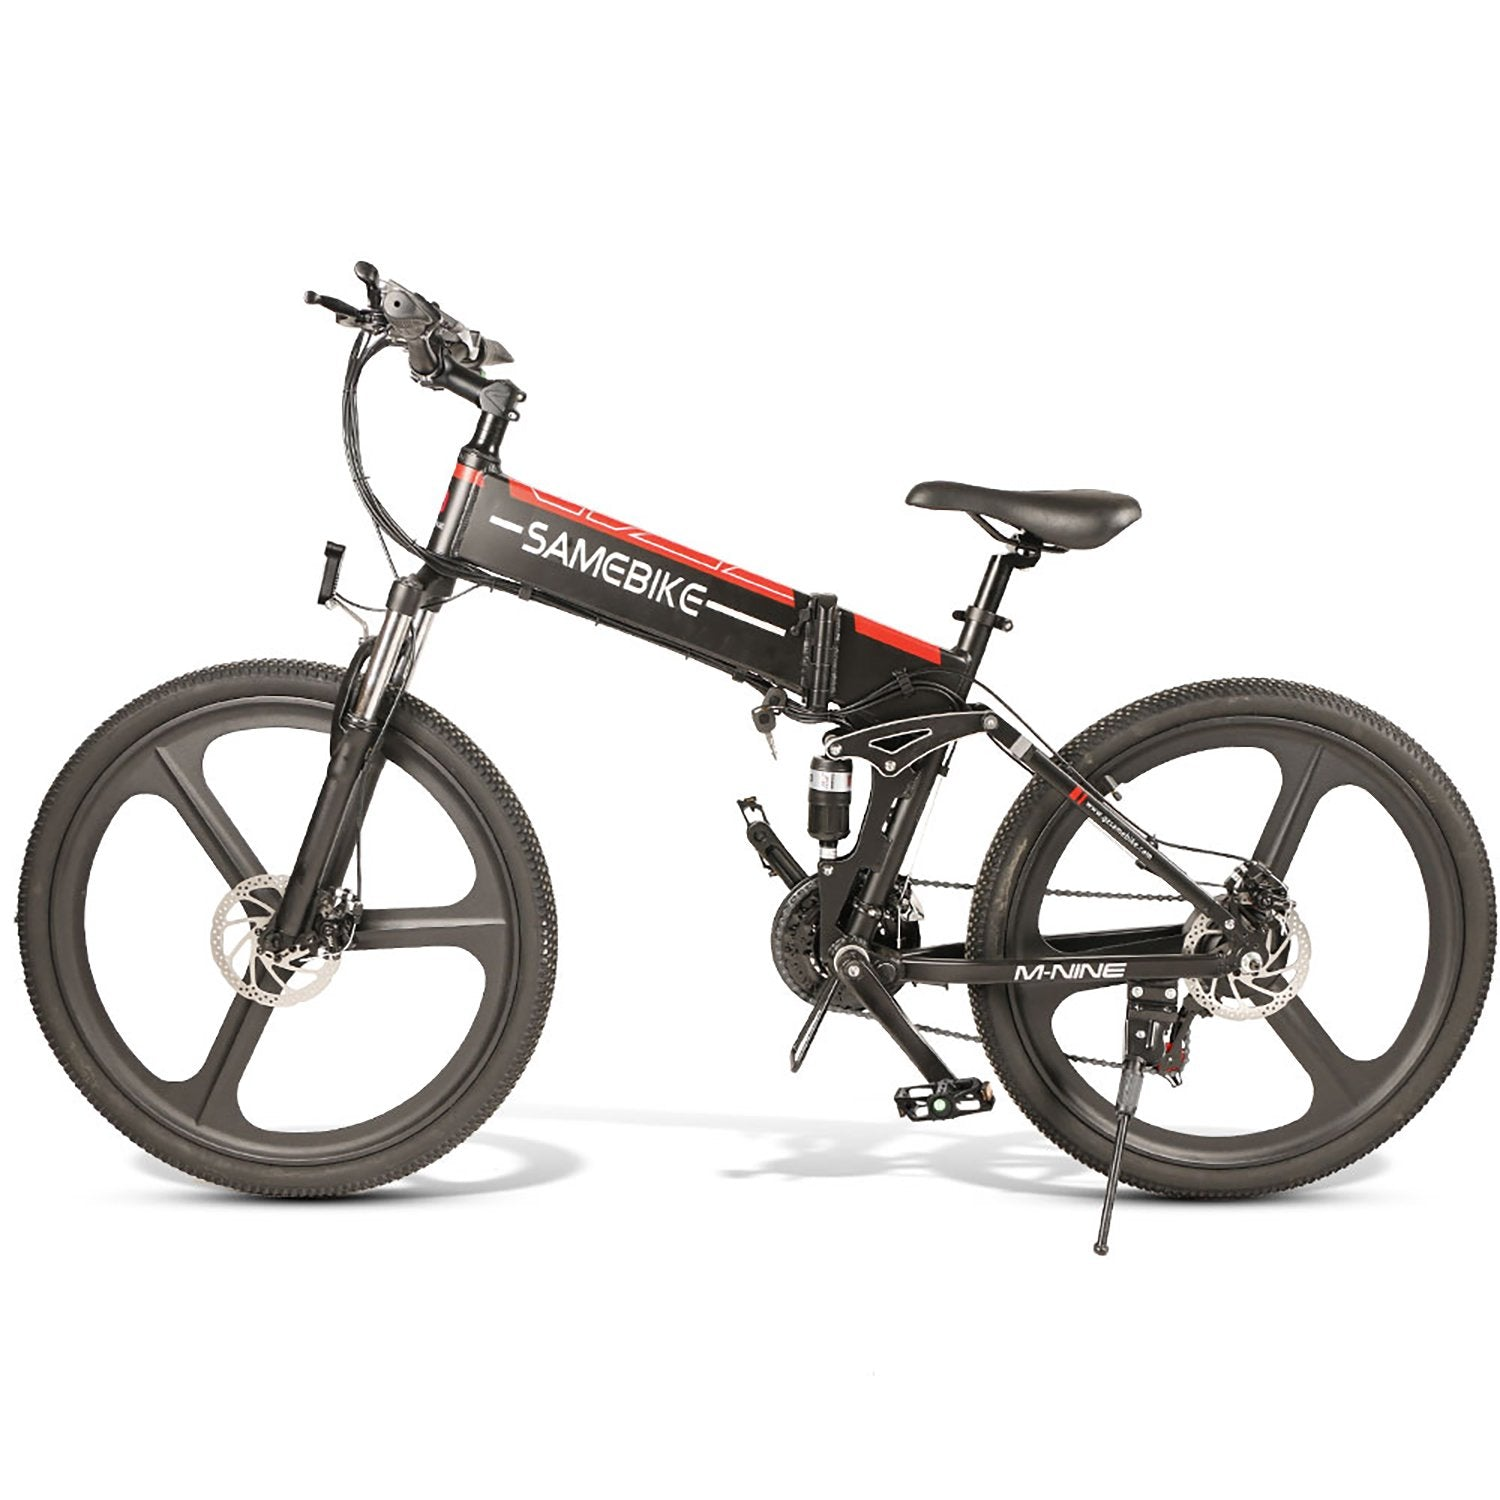 SAMEBIKE LO26 Folding Electric Bike 26 Inch Tires 350W Motor 10.4Ah Battery Max 35 KPH